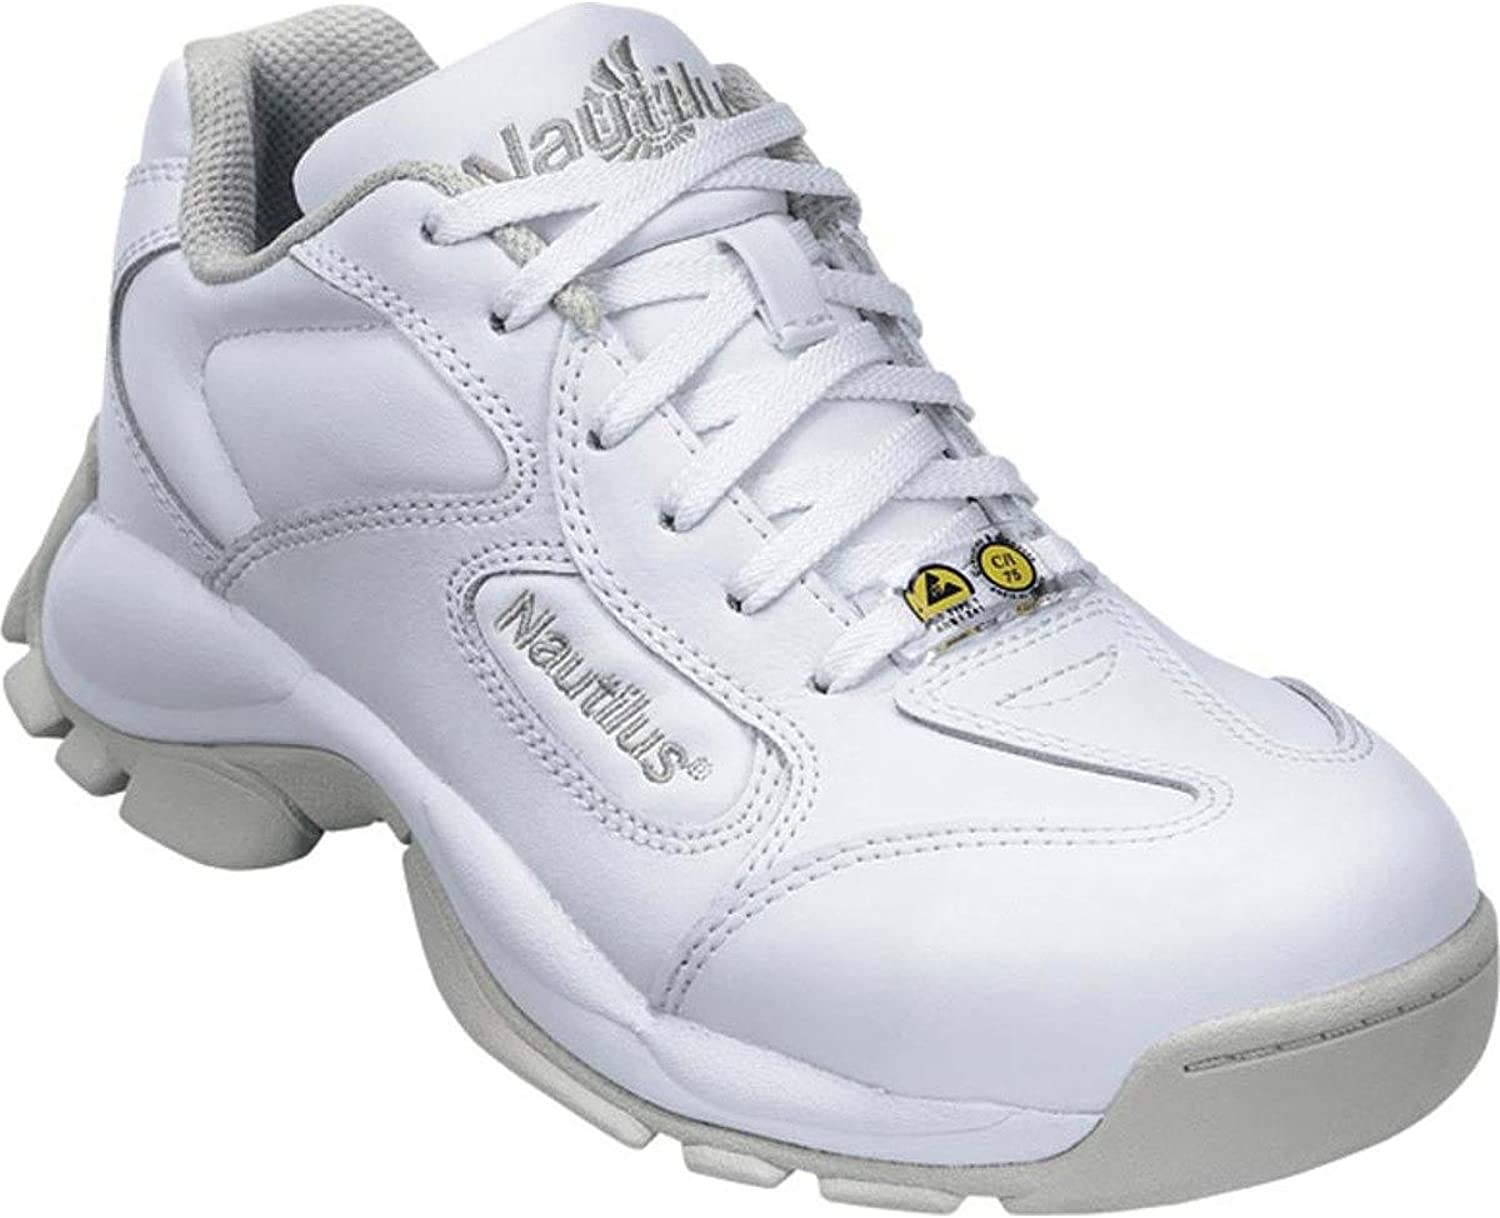 New In Box Nautilus Womens Steel Toe Work Shoes ESD Safety Toe Multiple Sizes